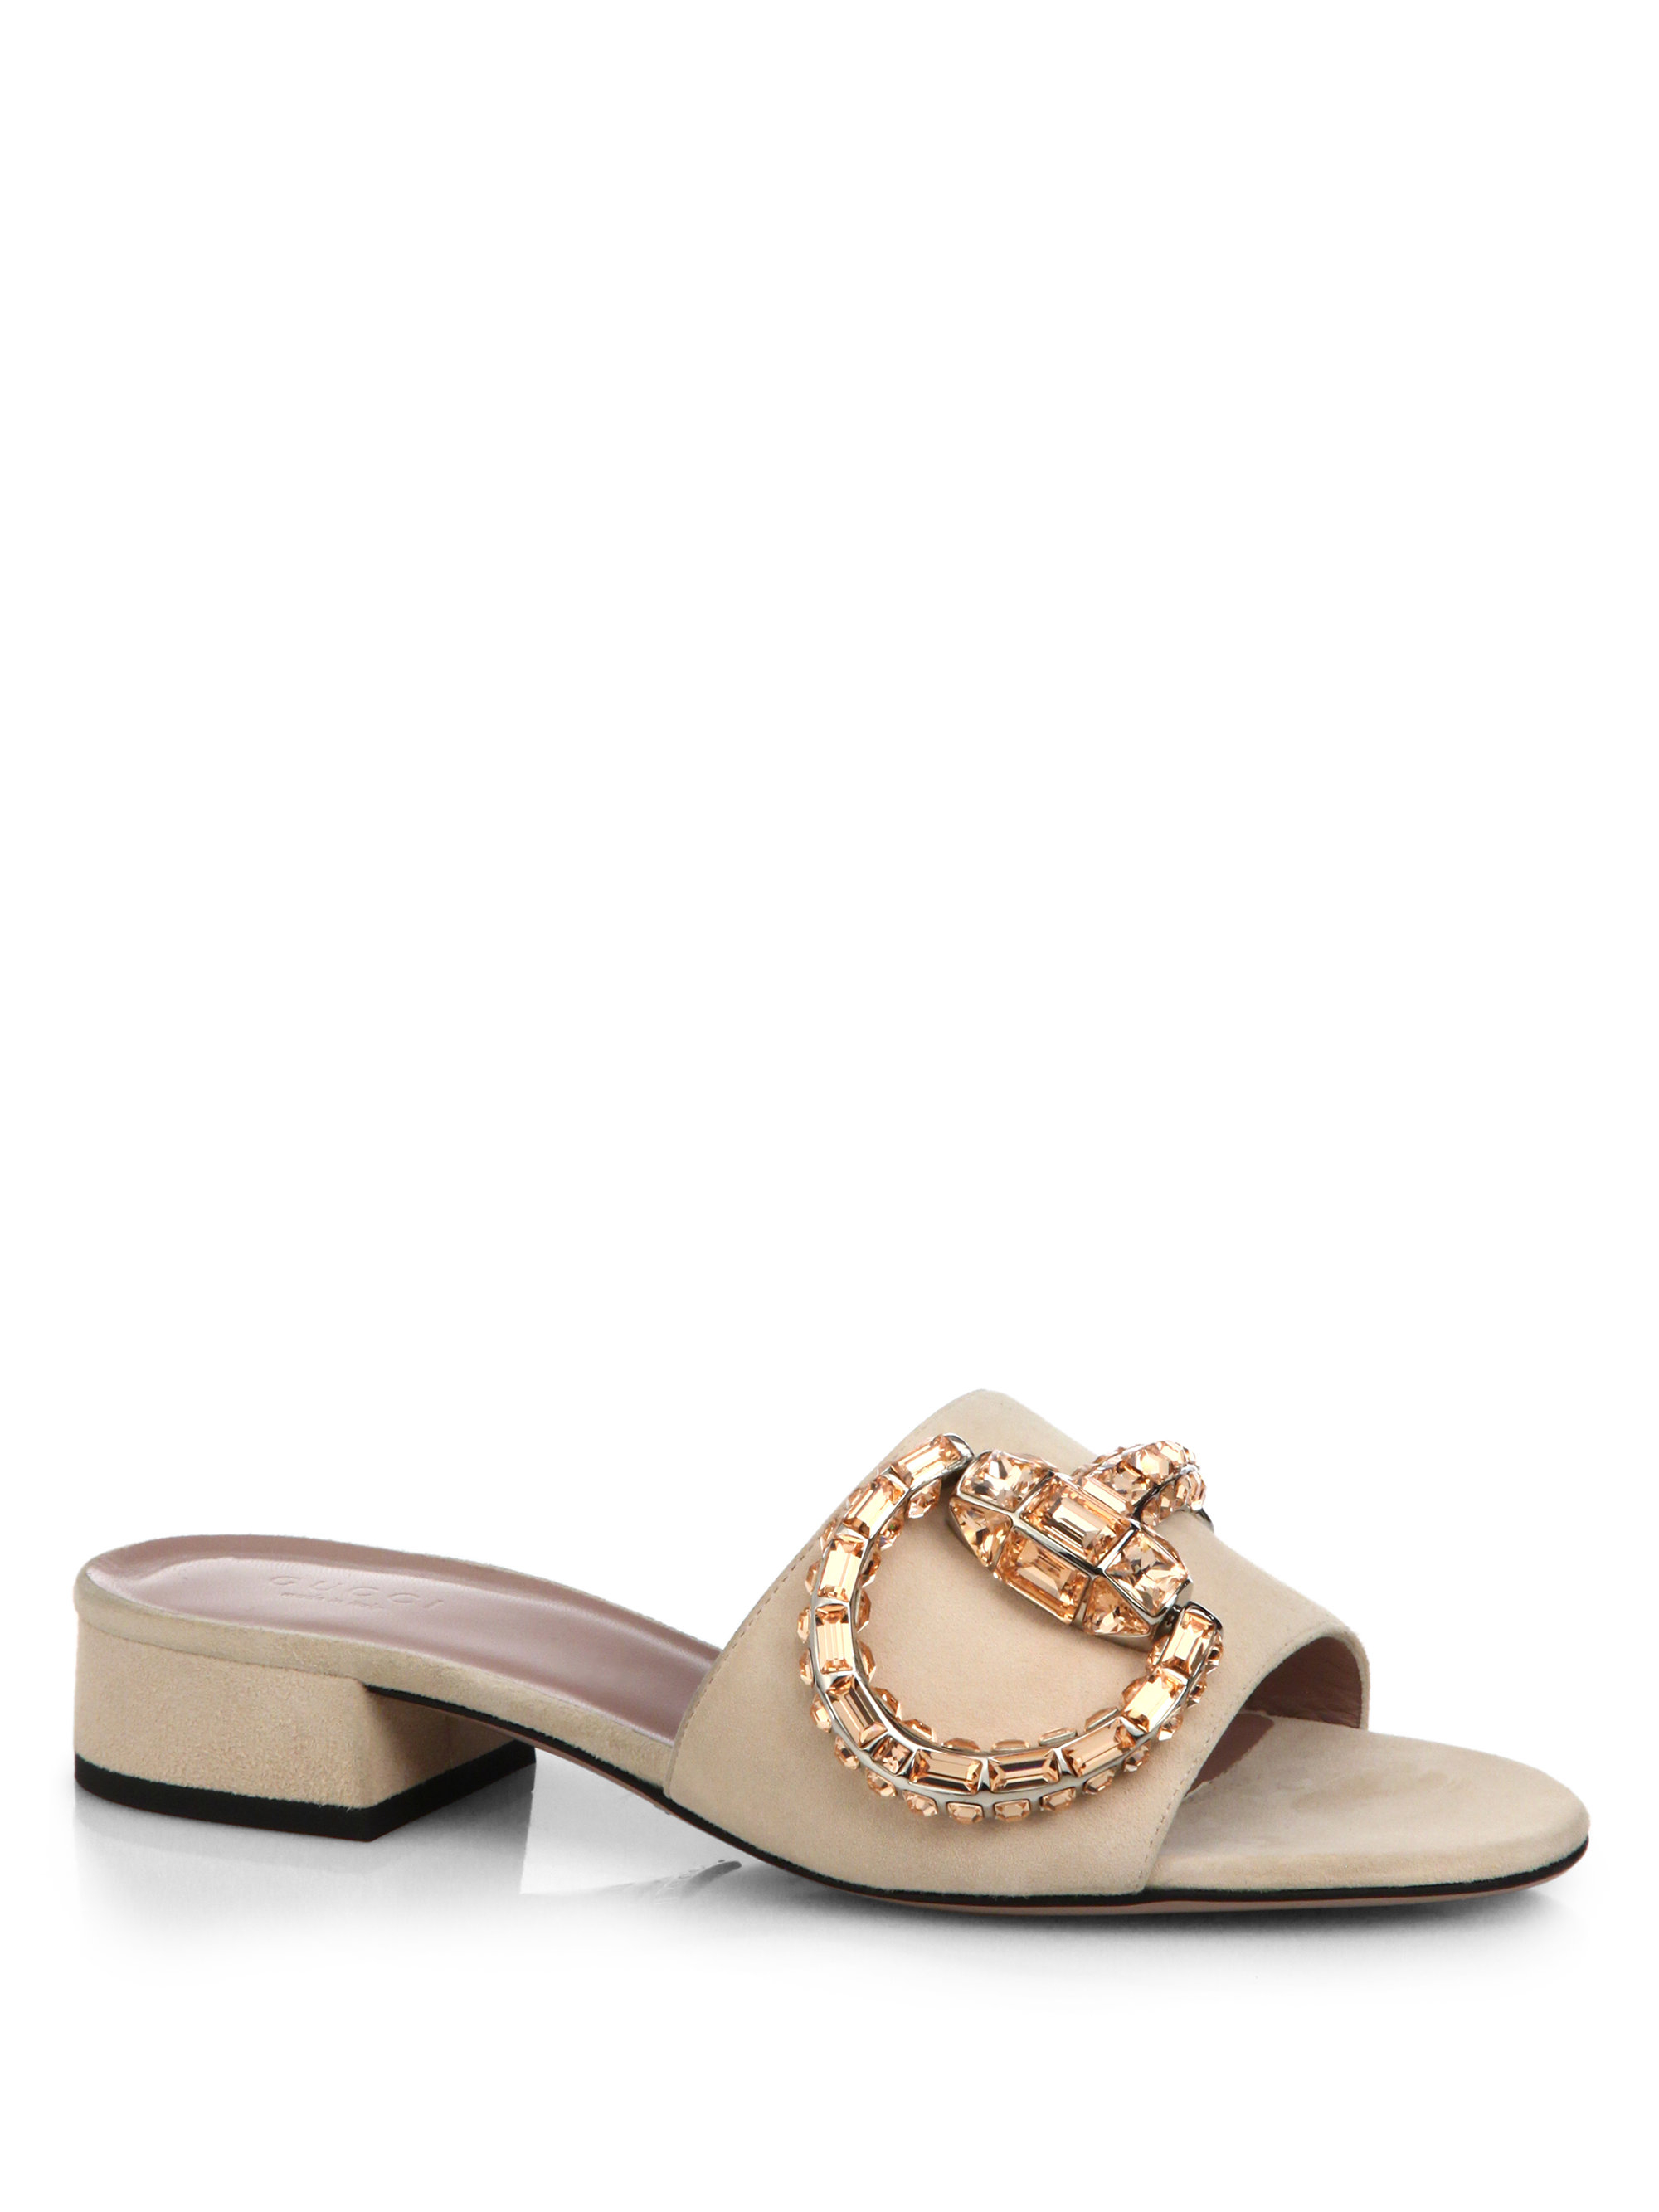 Luxury GUCCI WomenS Gucci Tian Slide Sandal At Neiman Marcus